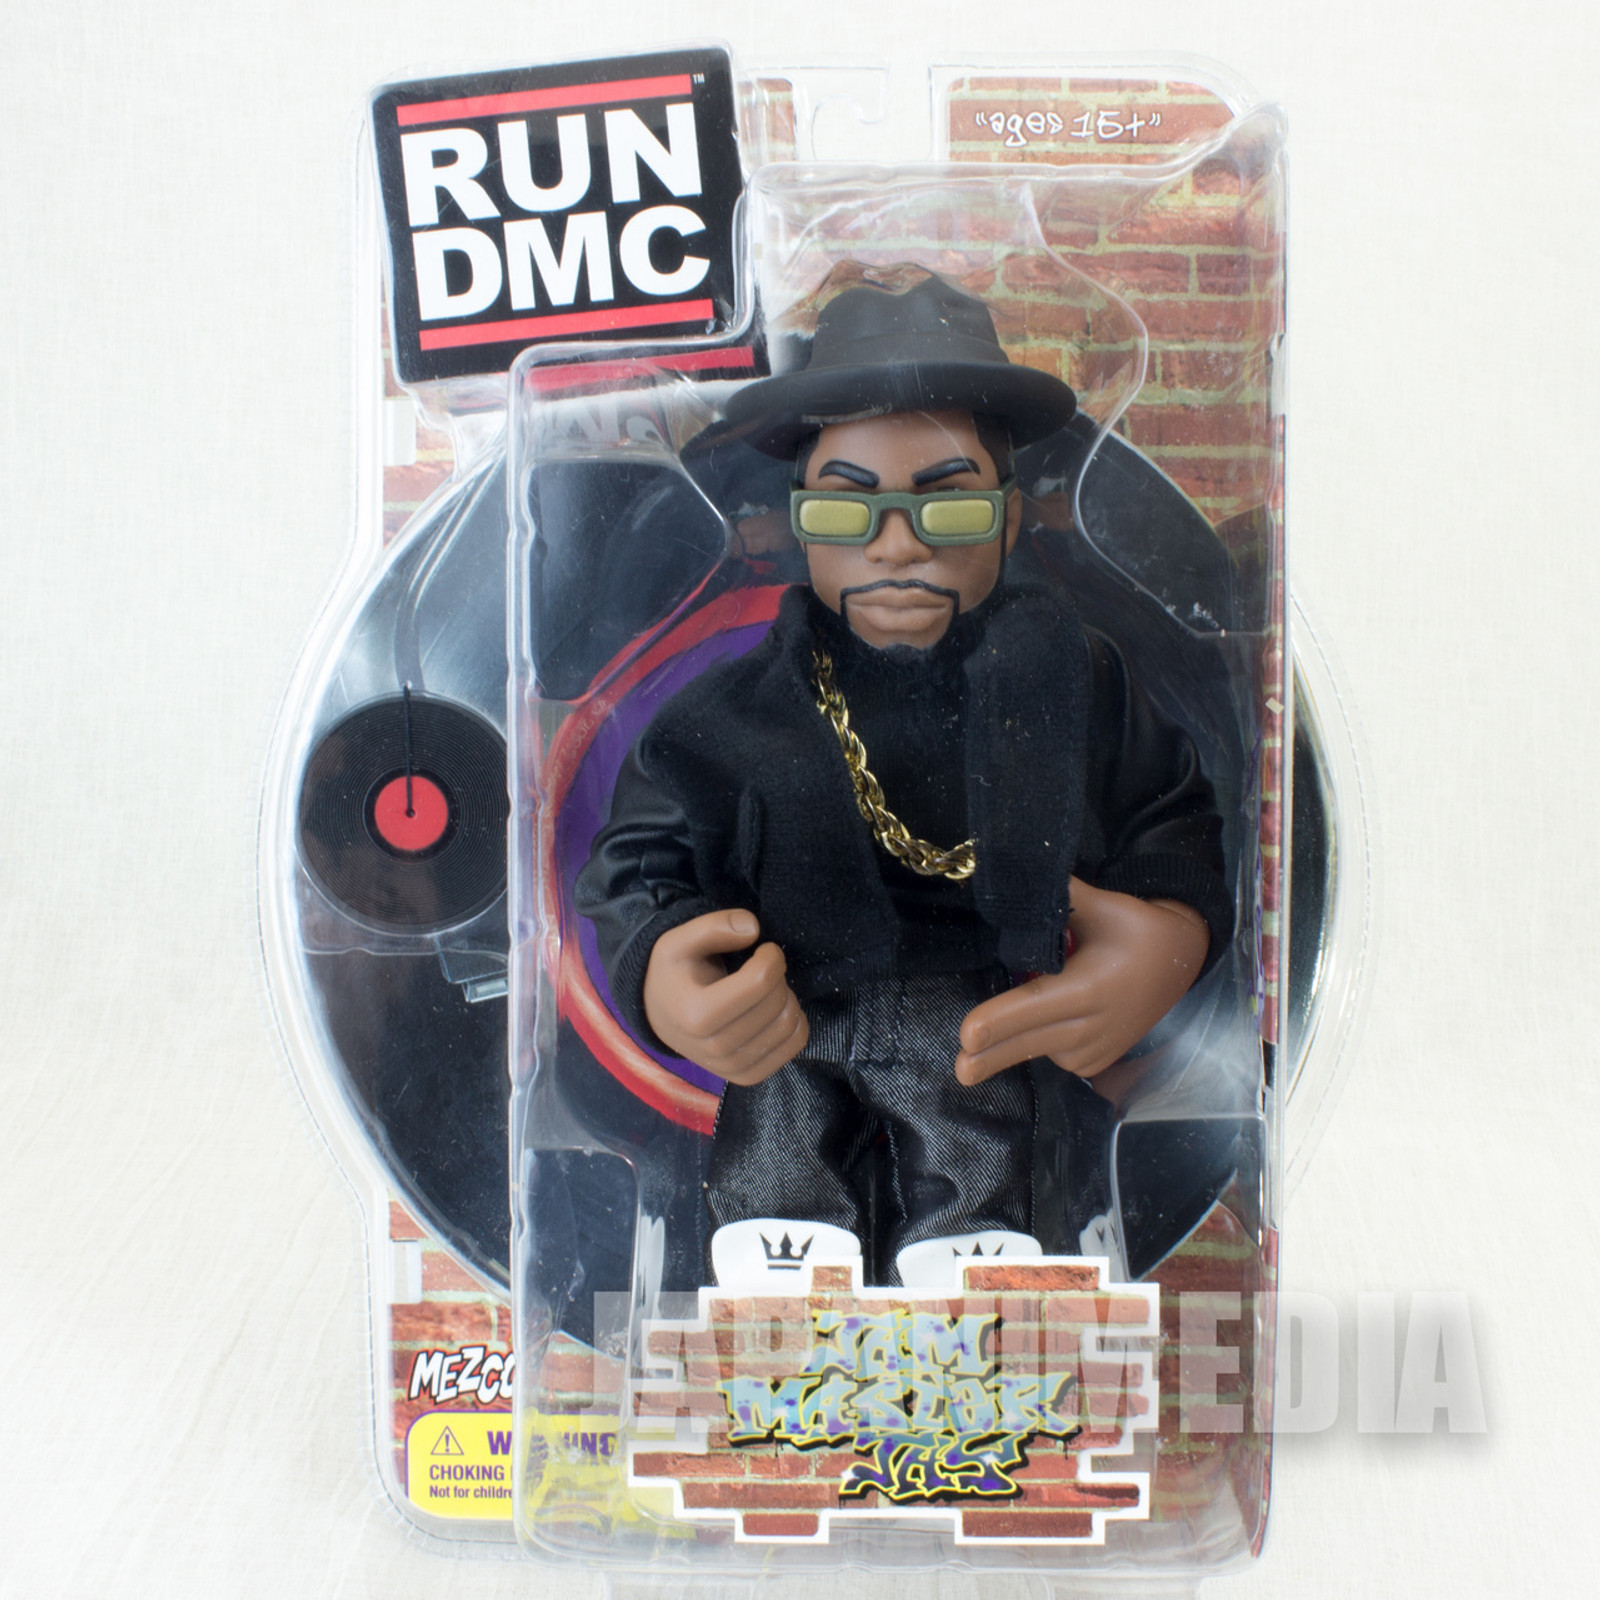 RUN DMC Jam Master Jay Action Figure Black Clothes Ver. Mezco Toy HIP HOP RAP